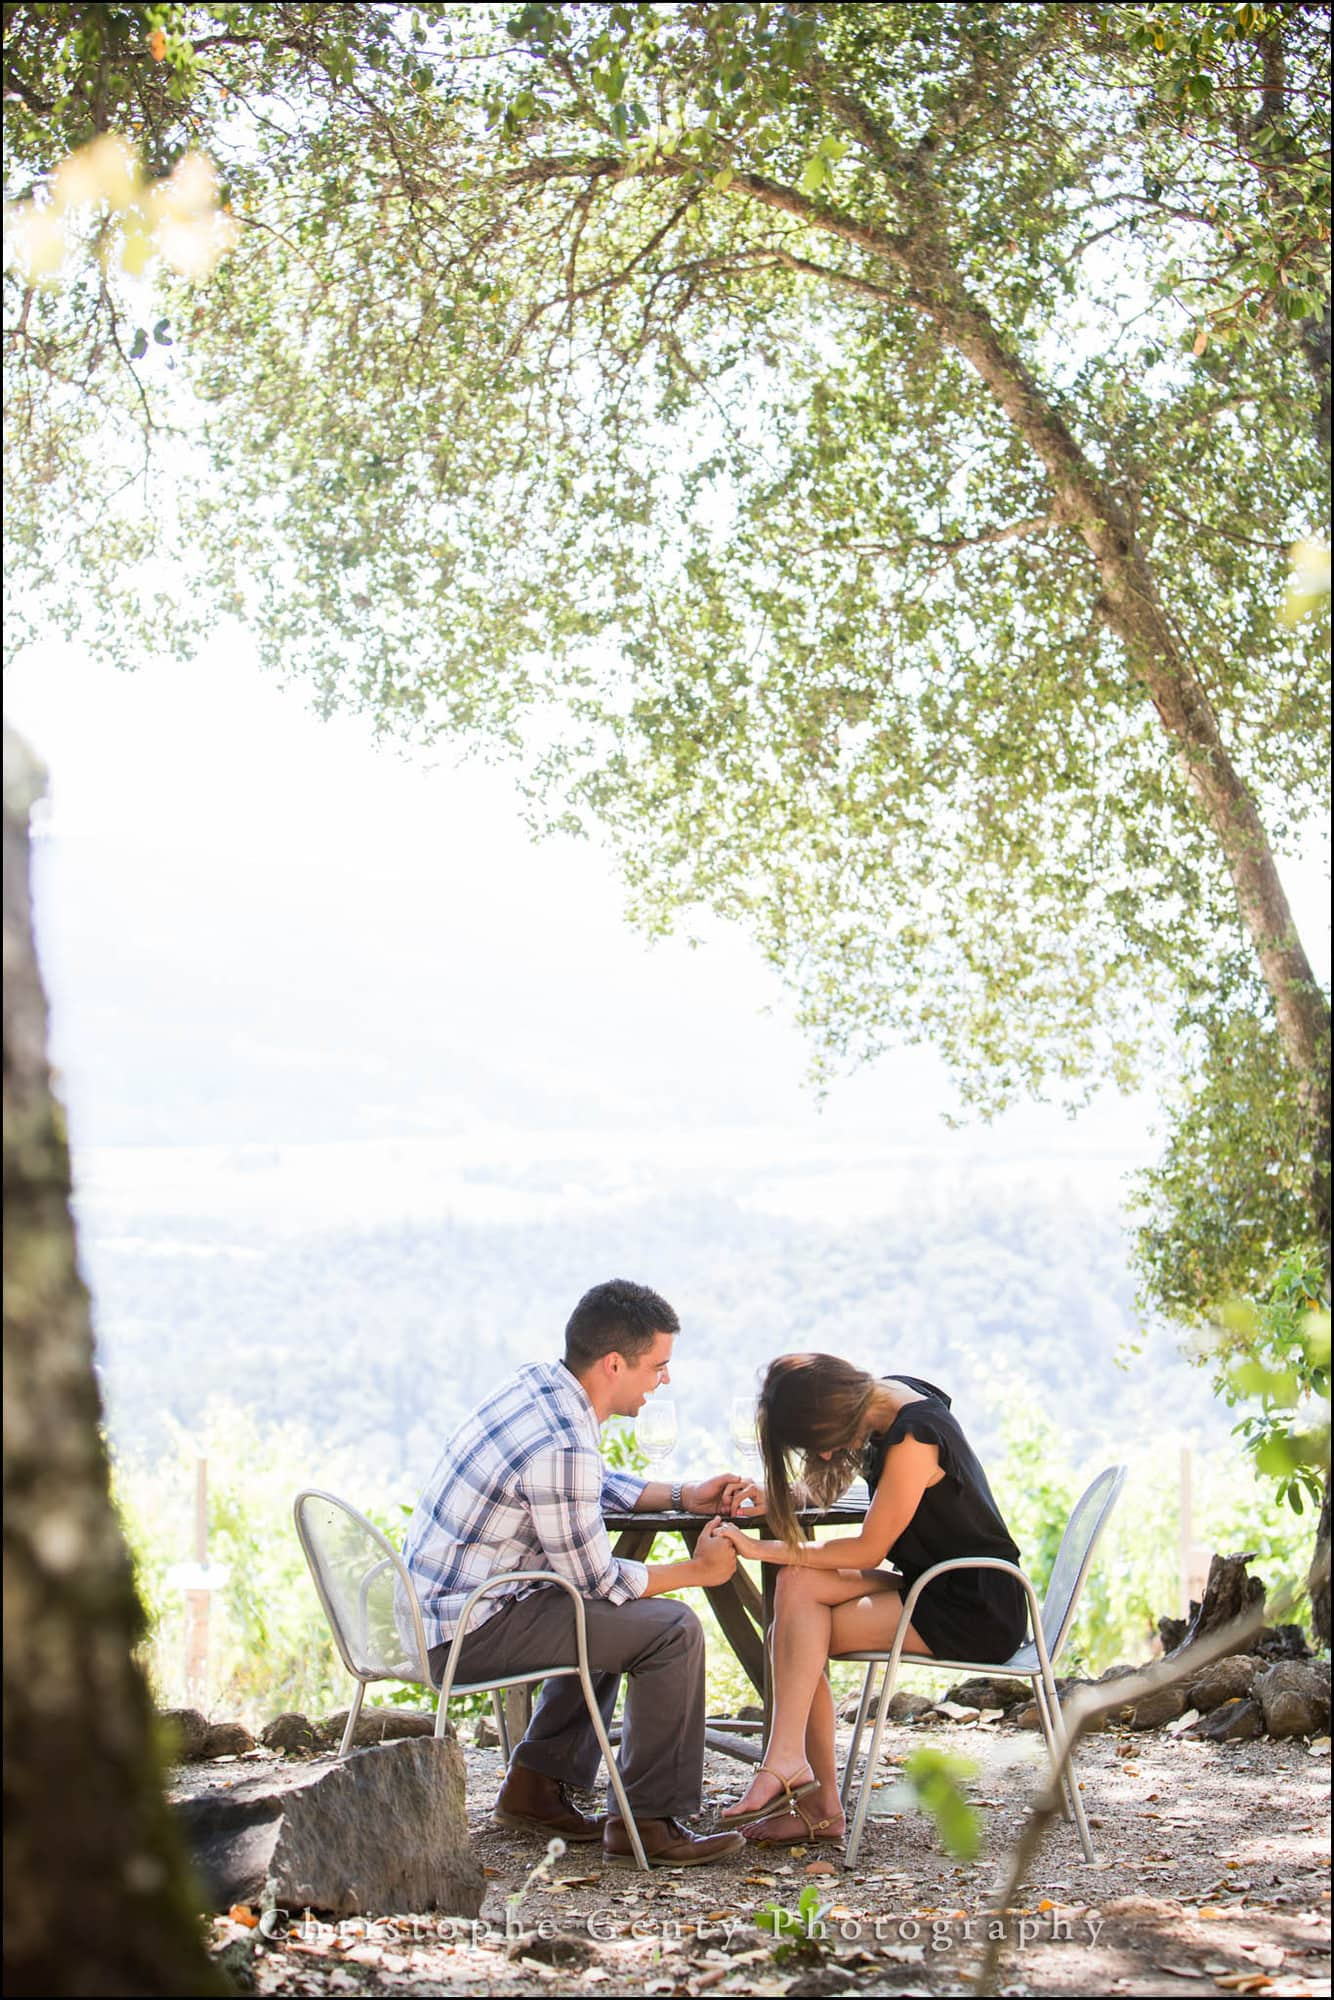 Marriage Proposal Photography in The Napa Valley